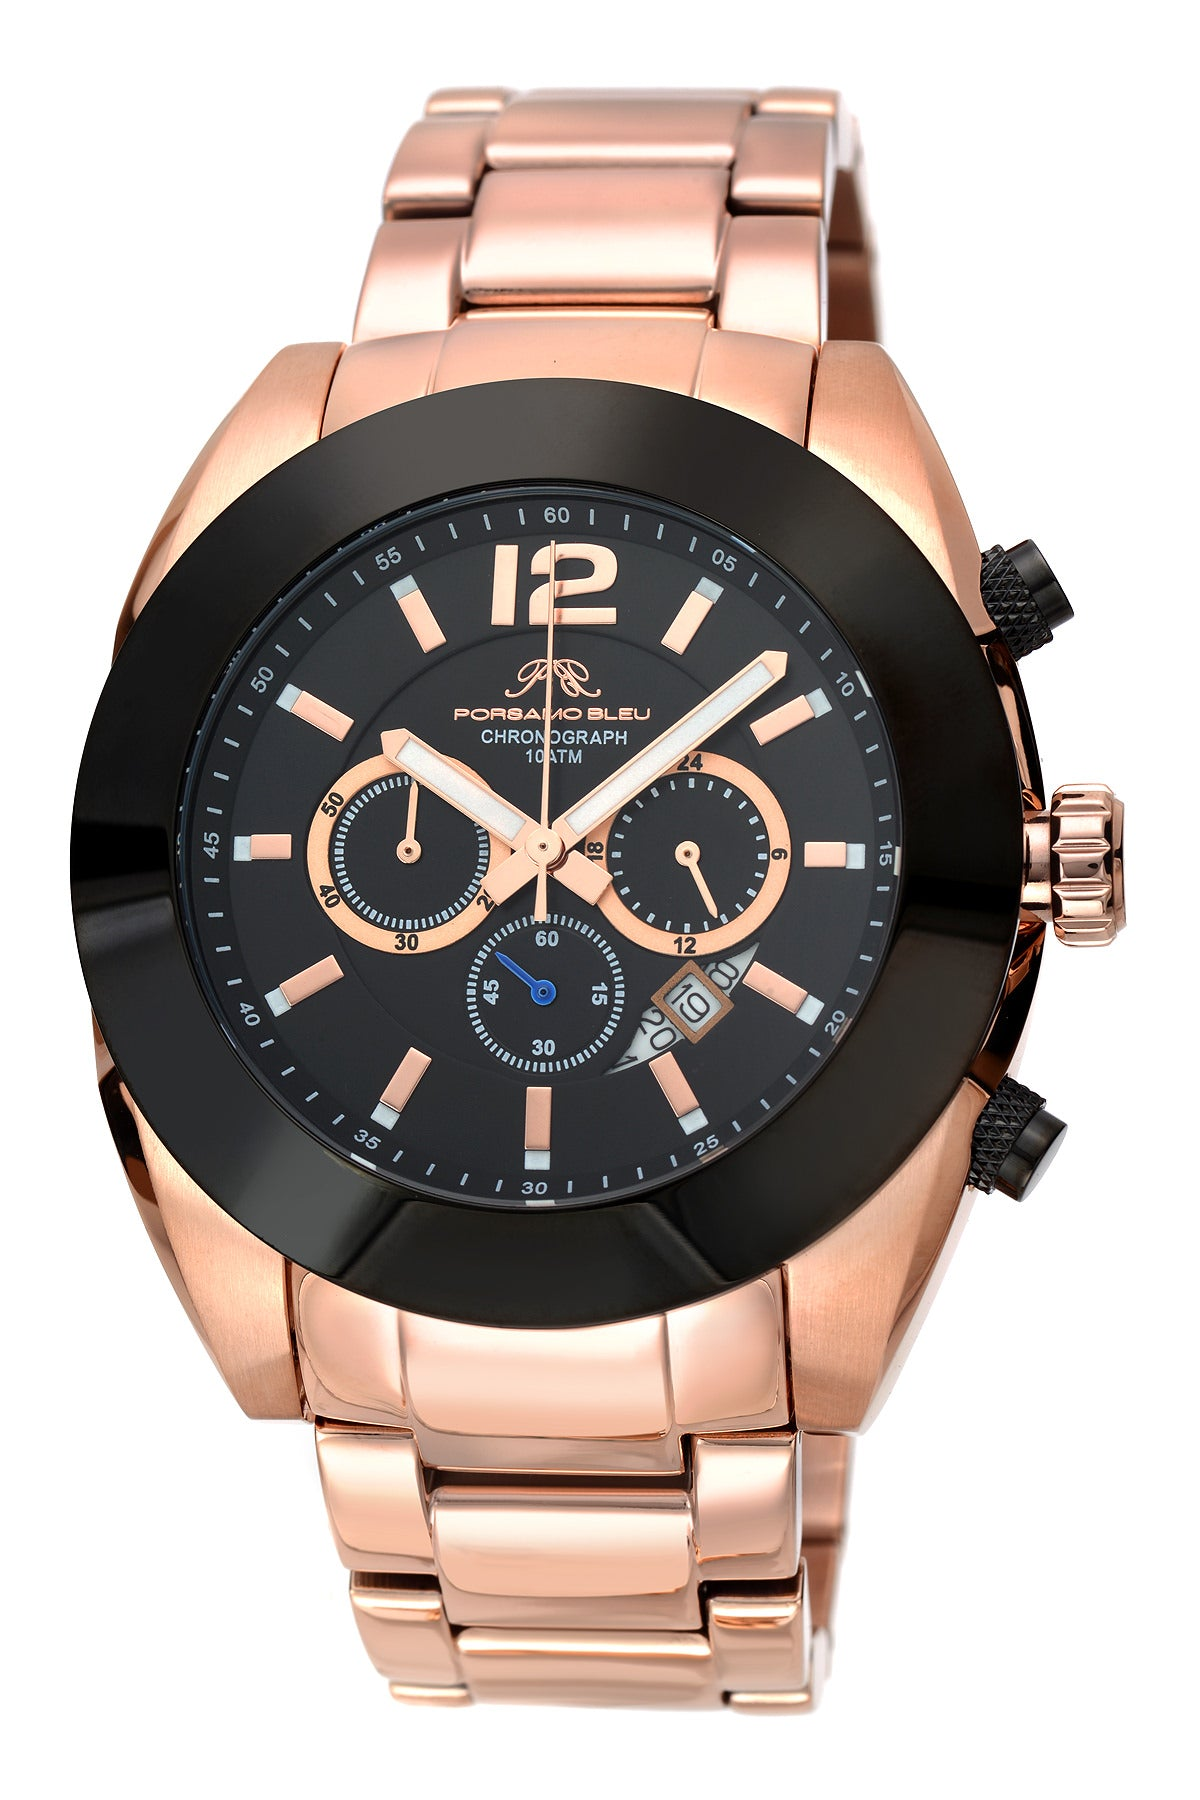 Porsamo Bleu Pascal luxury chronograph men's stainless steel watch, rose, black 262BPAS